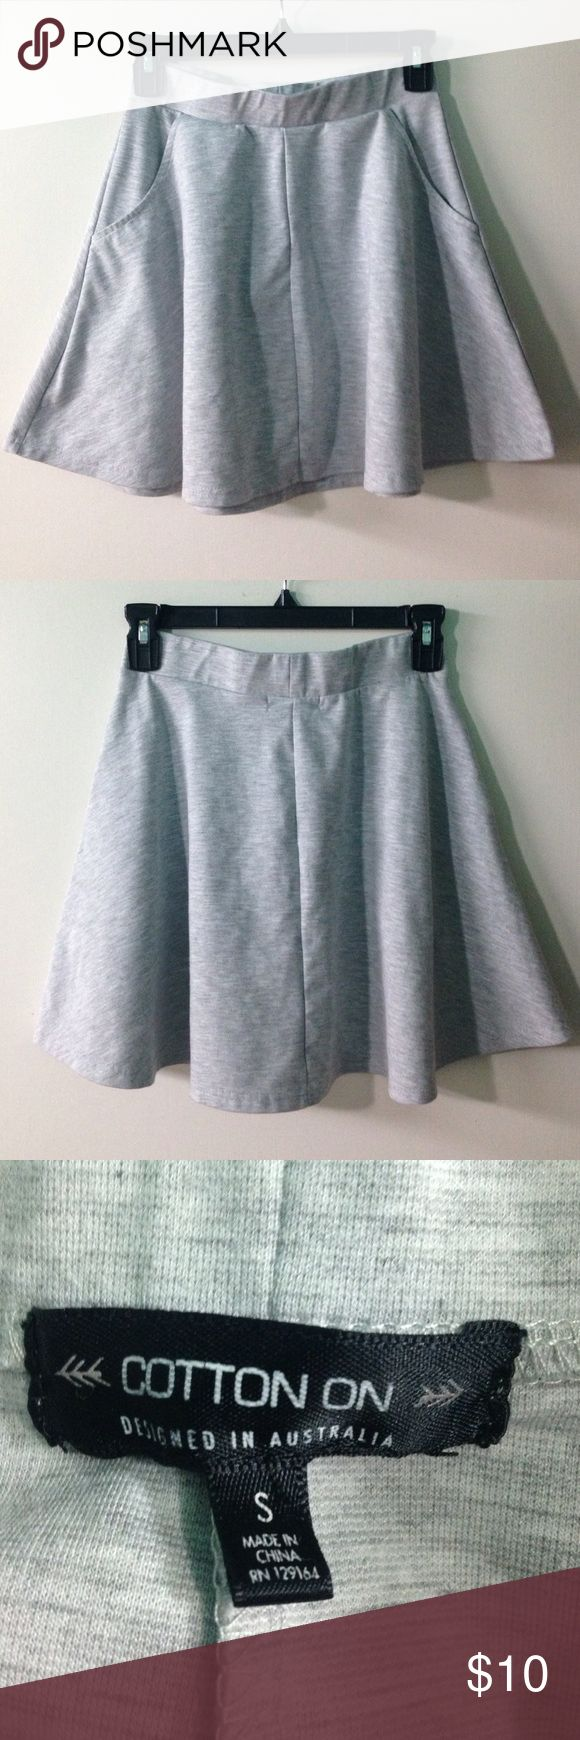 ️Cotton On Jasmine Flippy Skirt Cute skirt from Cotton On! Has two front pockets. NEW, never worn. Grey. Cotton On Skirts Circle & Skater